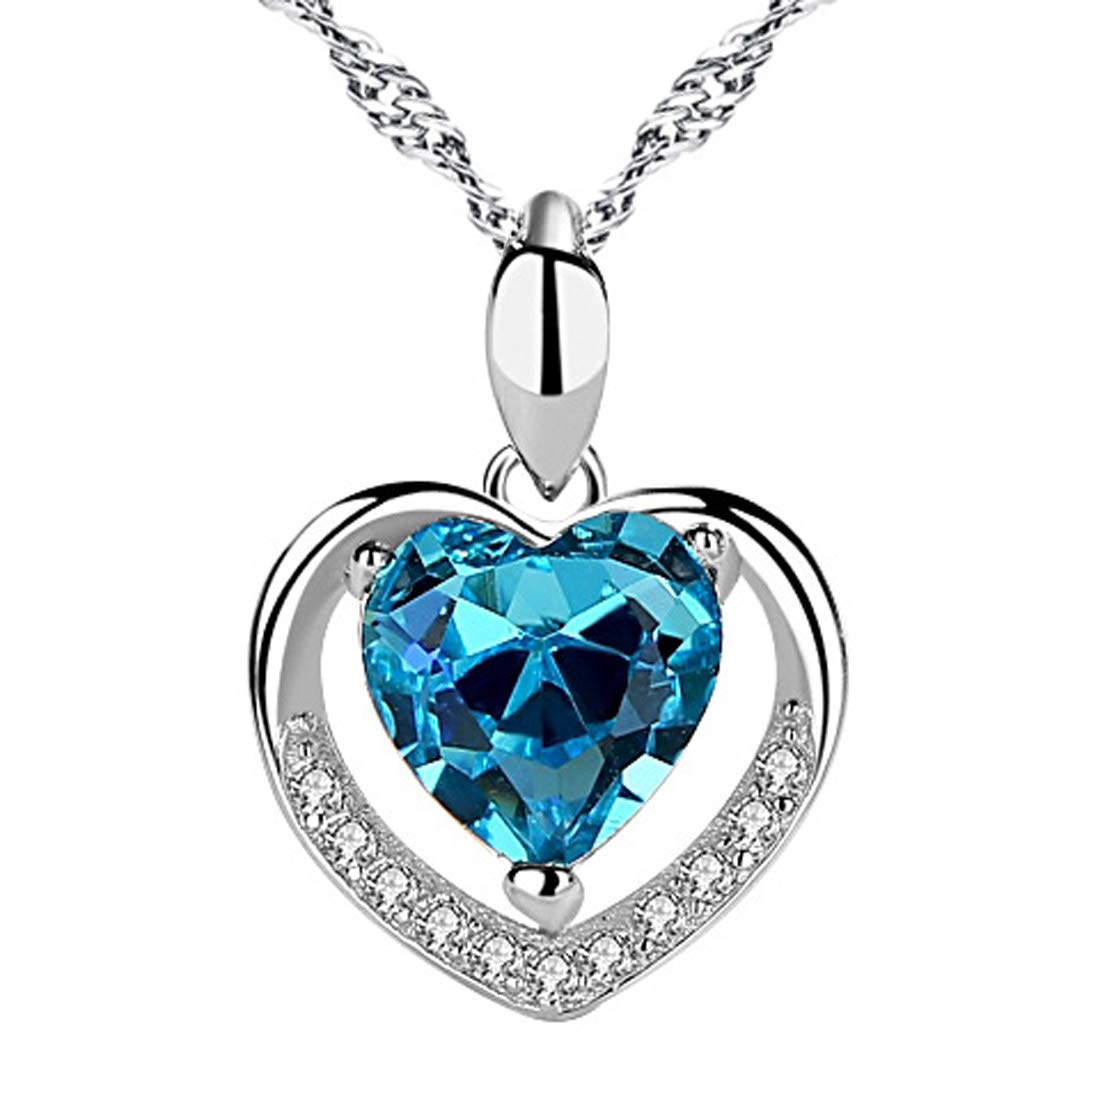 Chaomingzhen 925 Sterling Silver Always in My Heart Blue Crystal CZ Heart Pendant Enhancer for Women by chaomingzhen